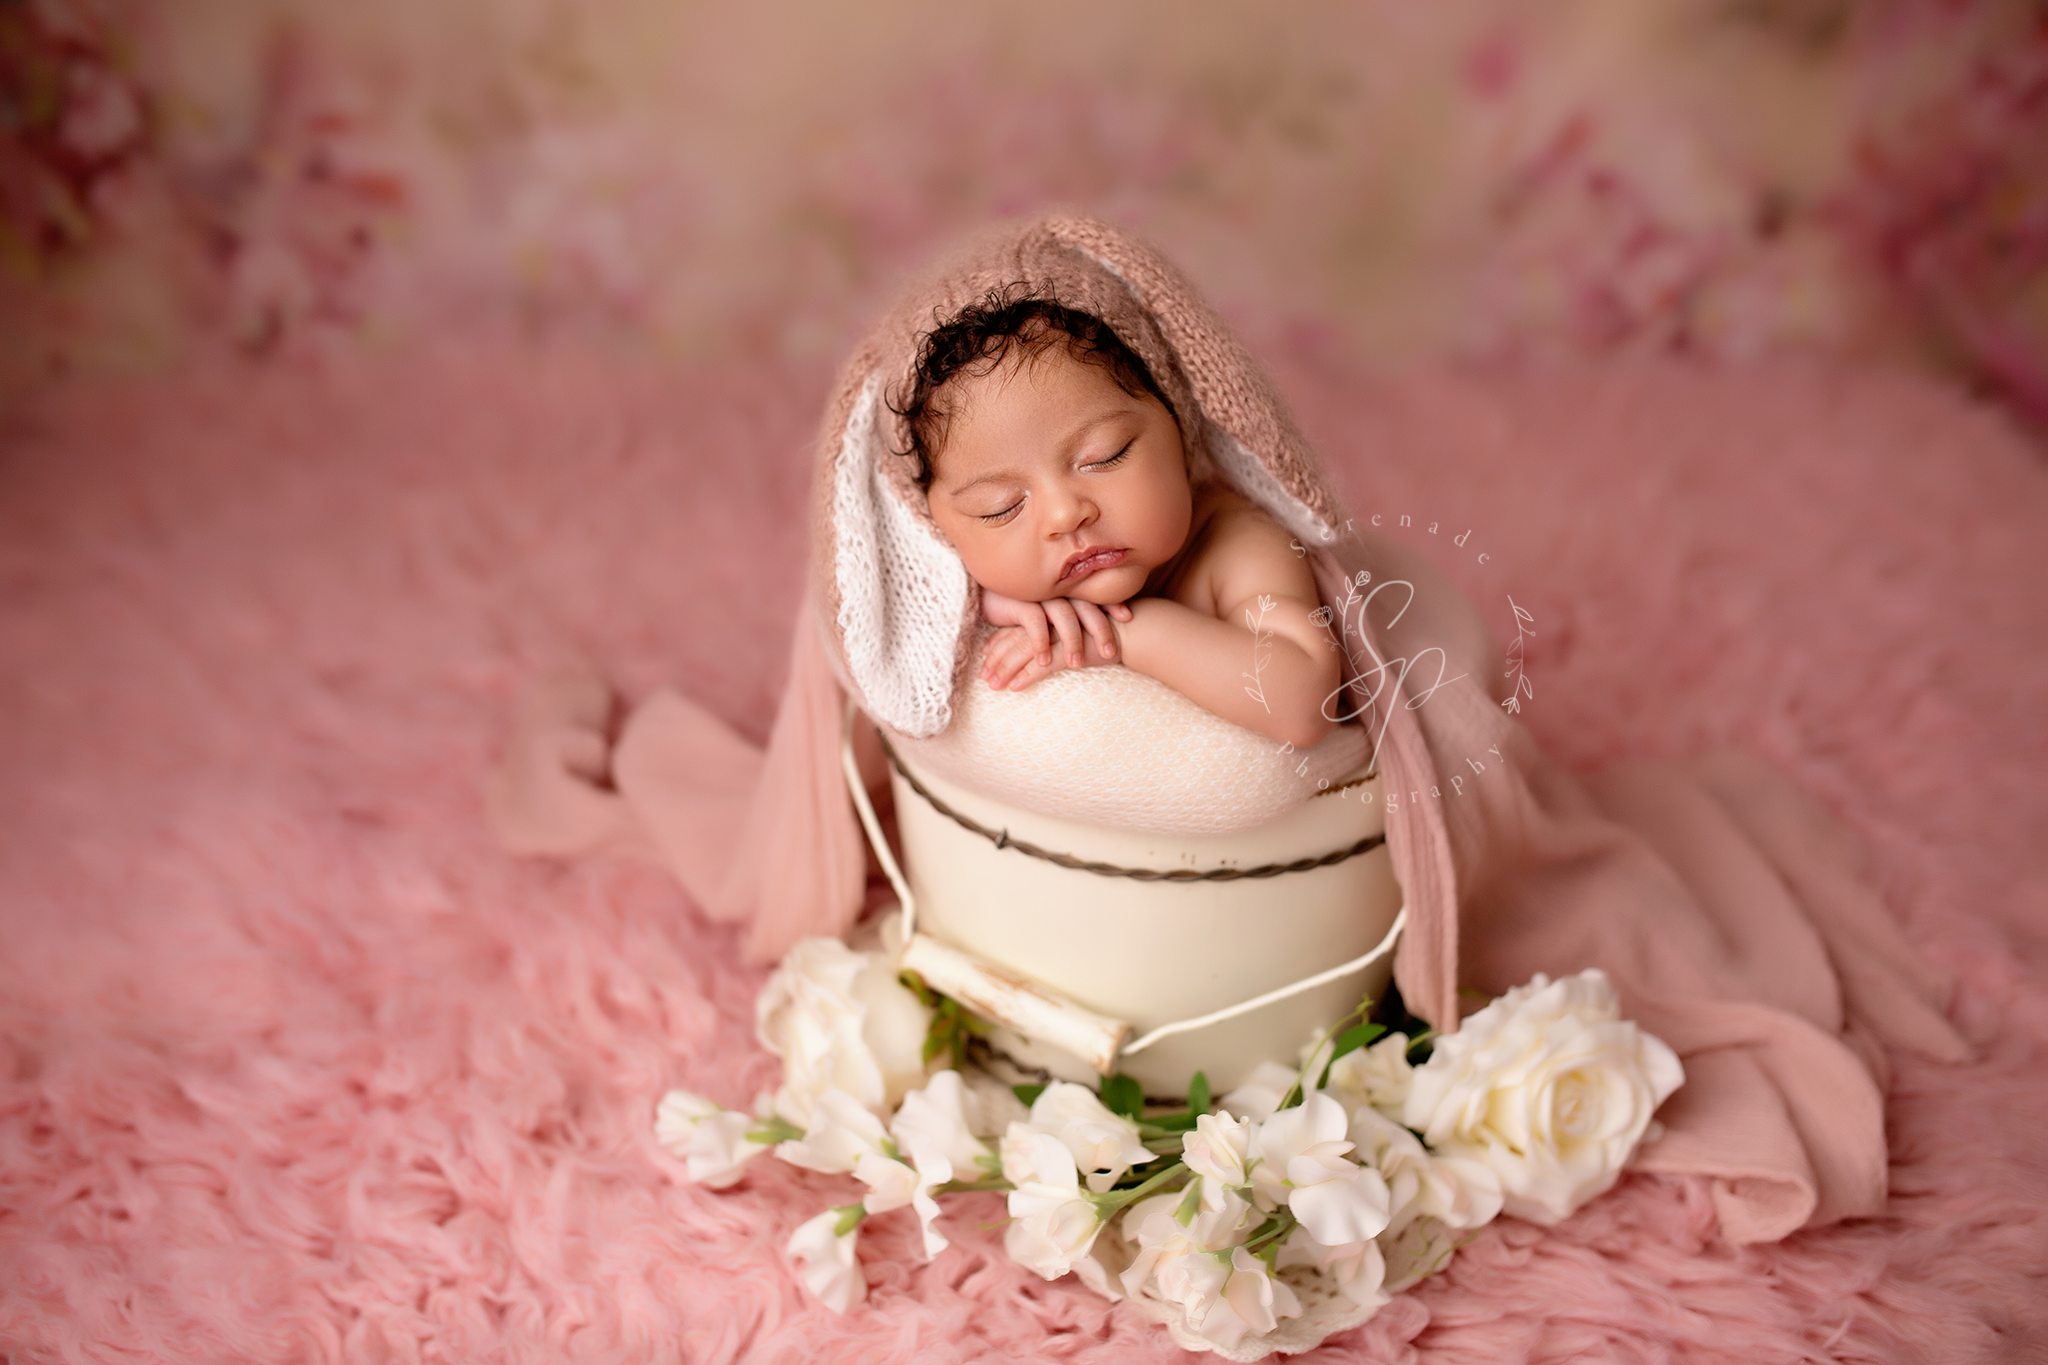 Newborn photographer Chester